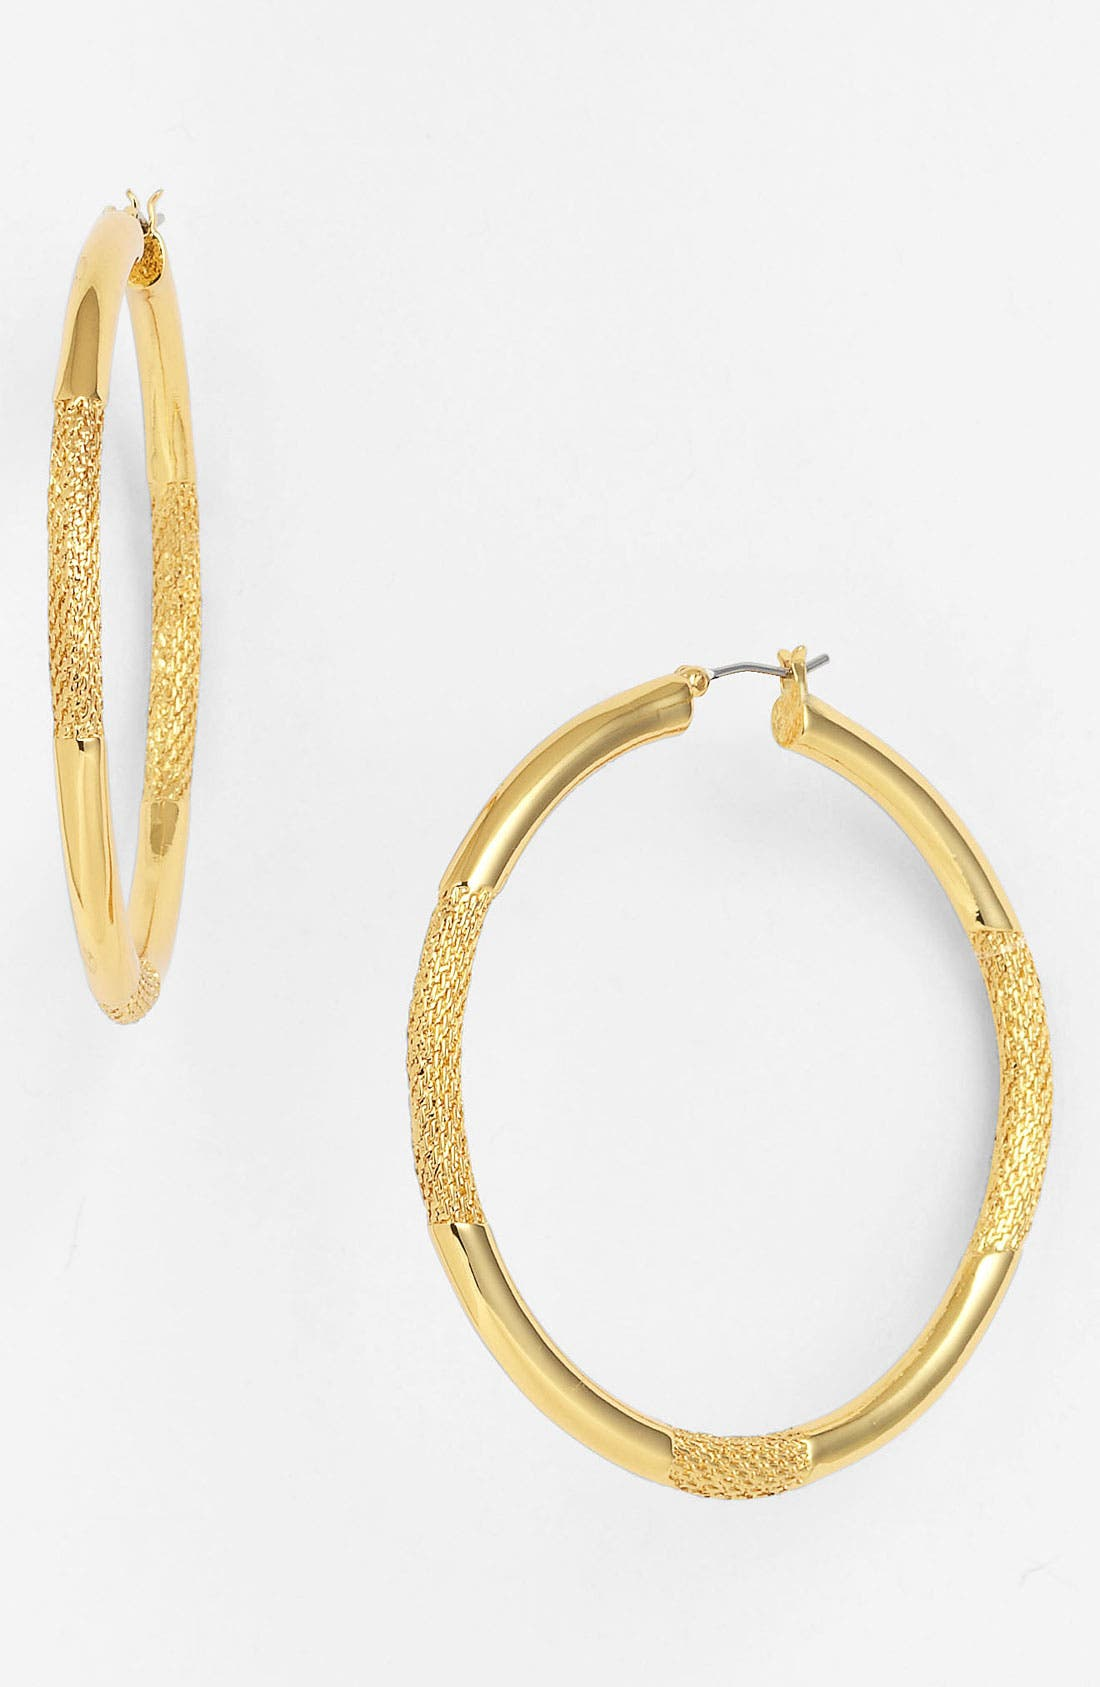 Alternate Image 1 Selected - Vince Camuto 'Clean Slate' Hoop Earrings